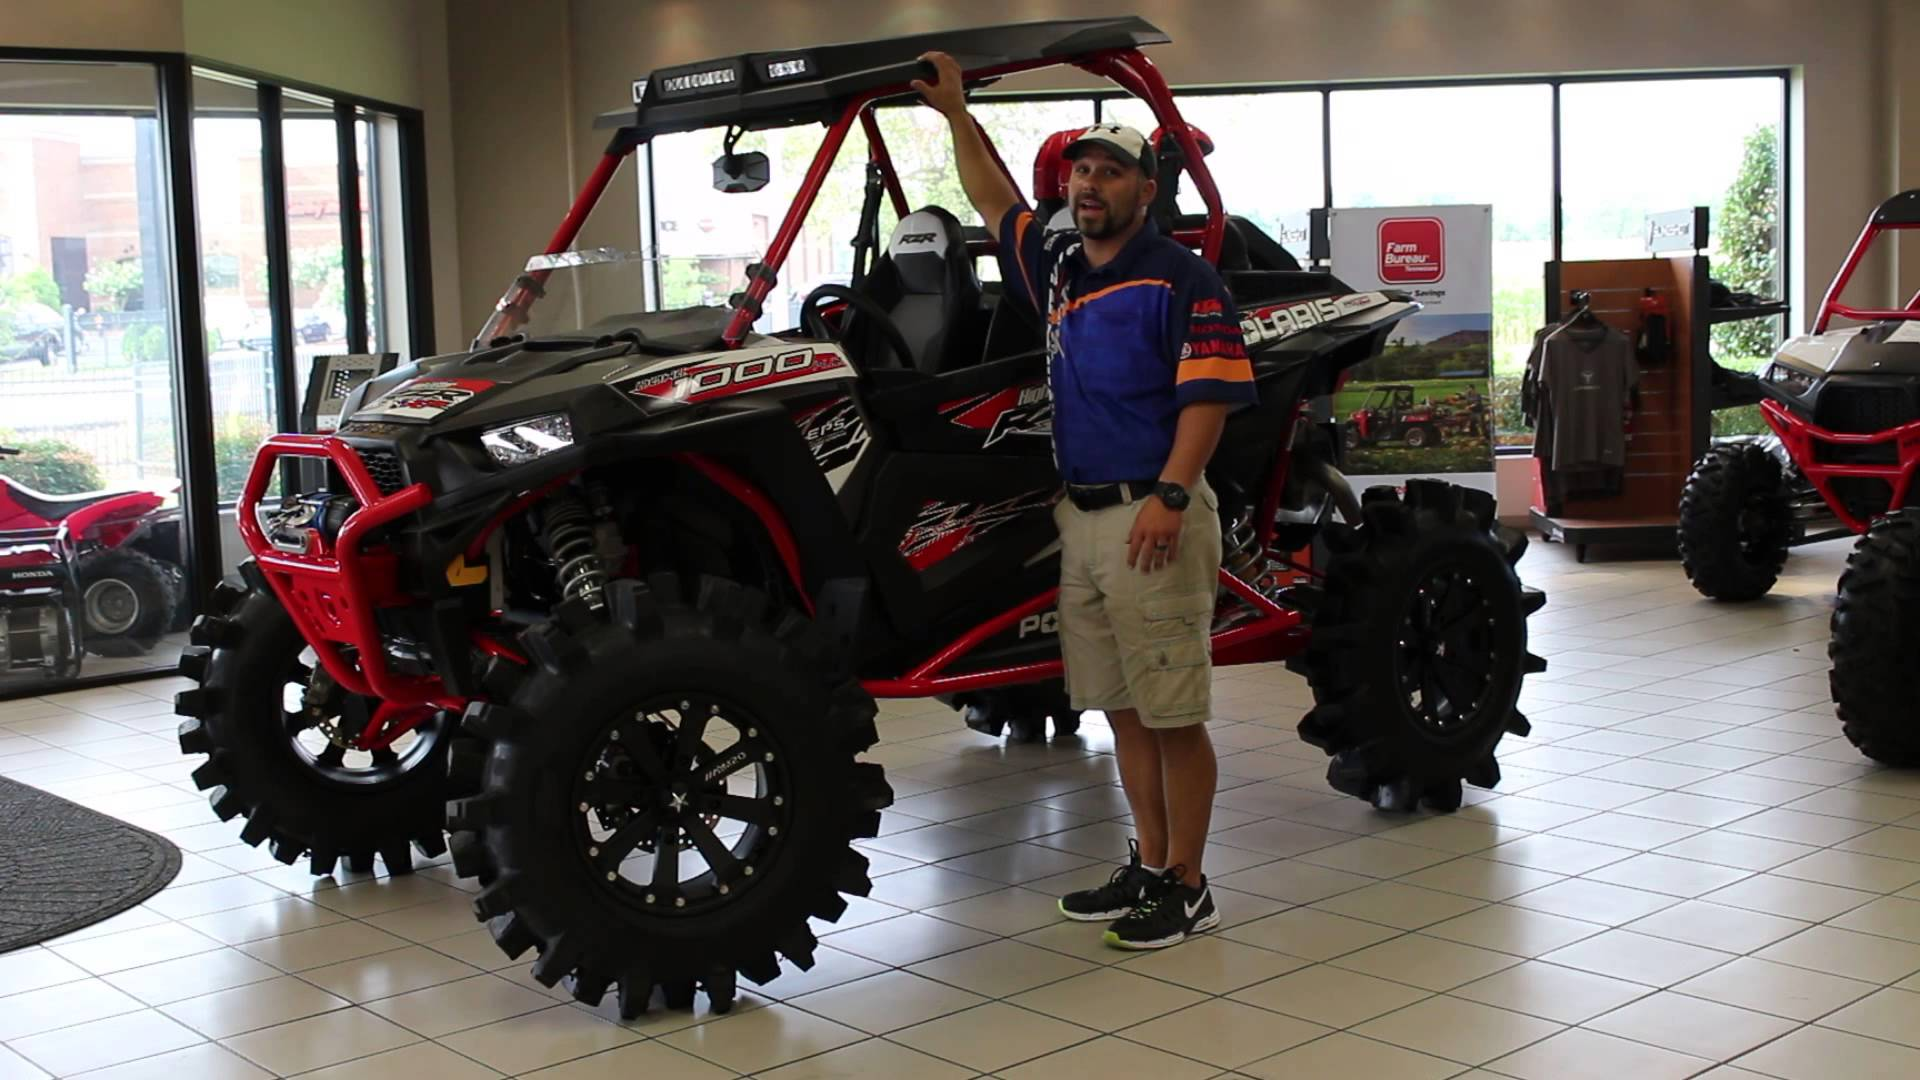 2016 Polaris Rzr 1000 Highlifter The Mud Machine